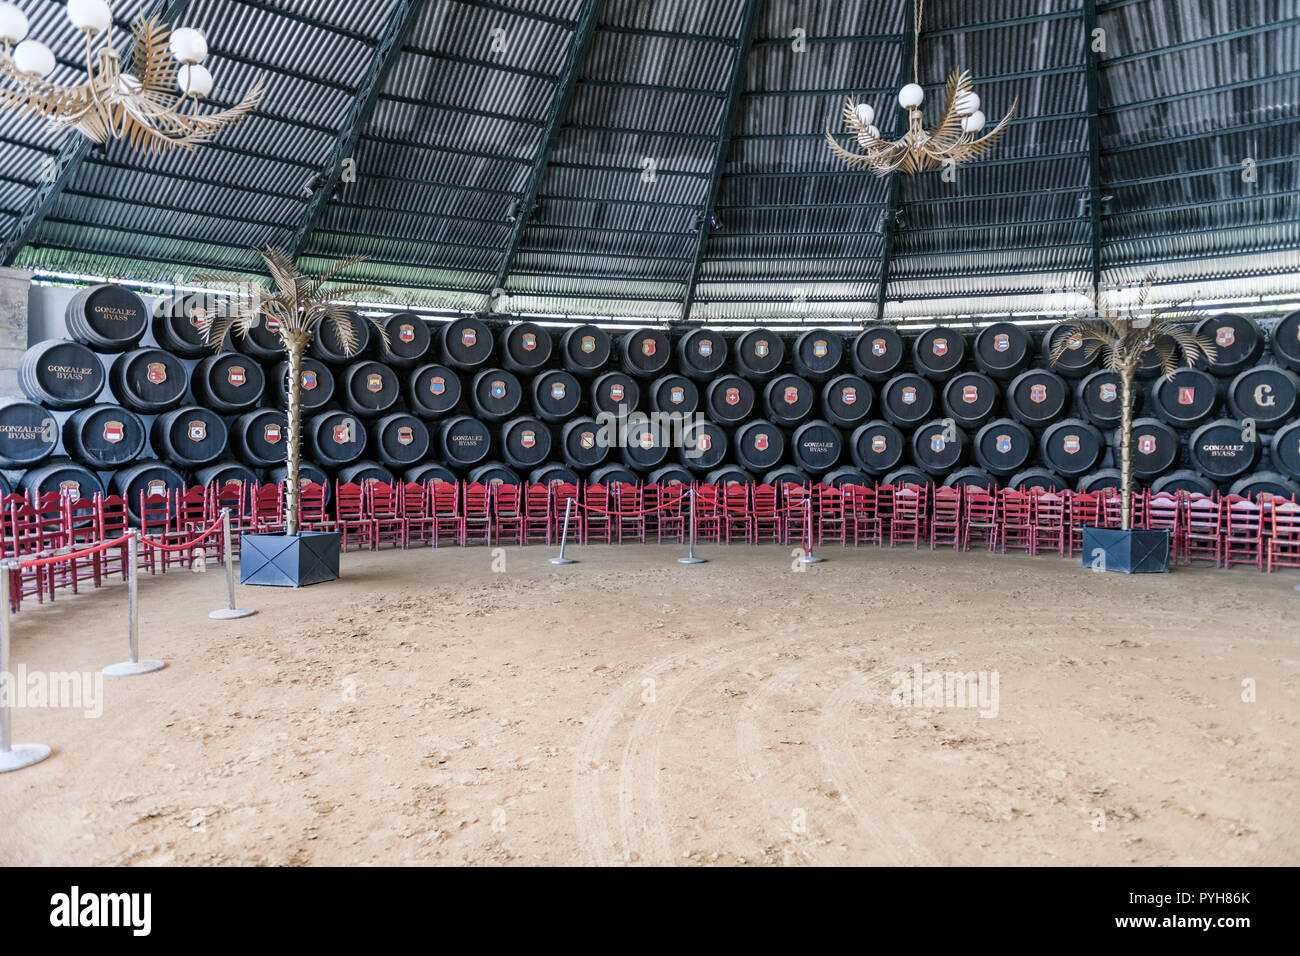 Rows of sherry barrels at the Gonzalez Byass winery Jerez, each one has a flag representing every coutry the sherry is exported to. - Stock Image